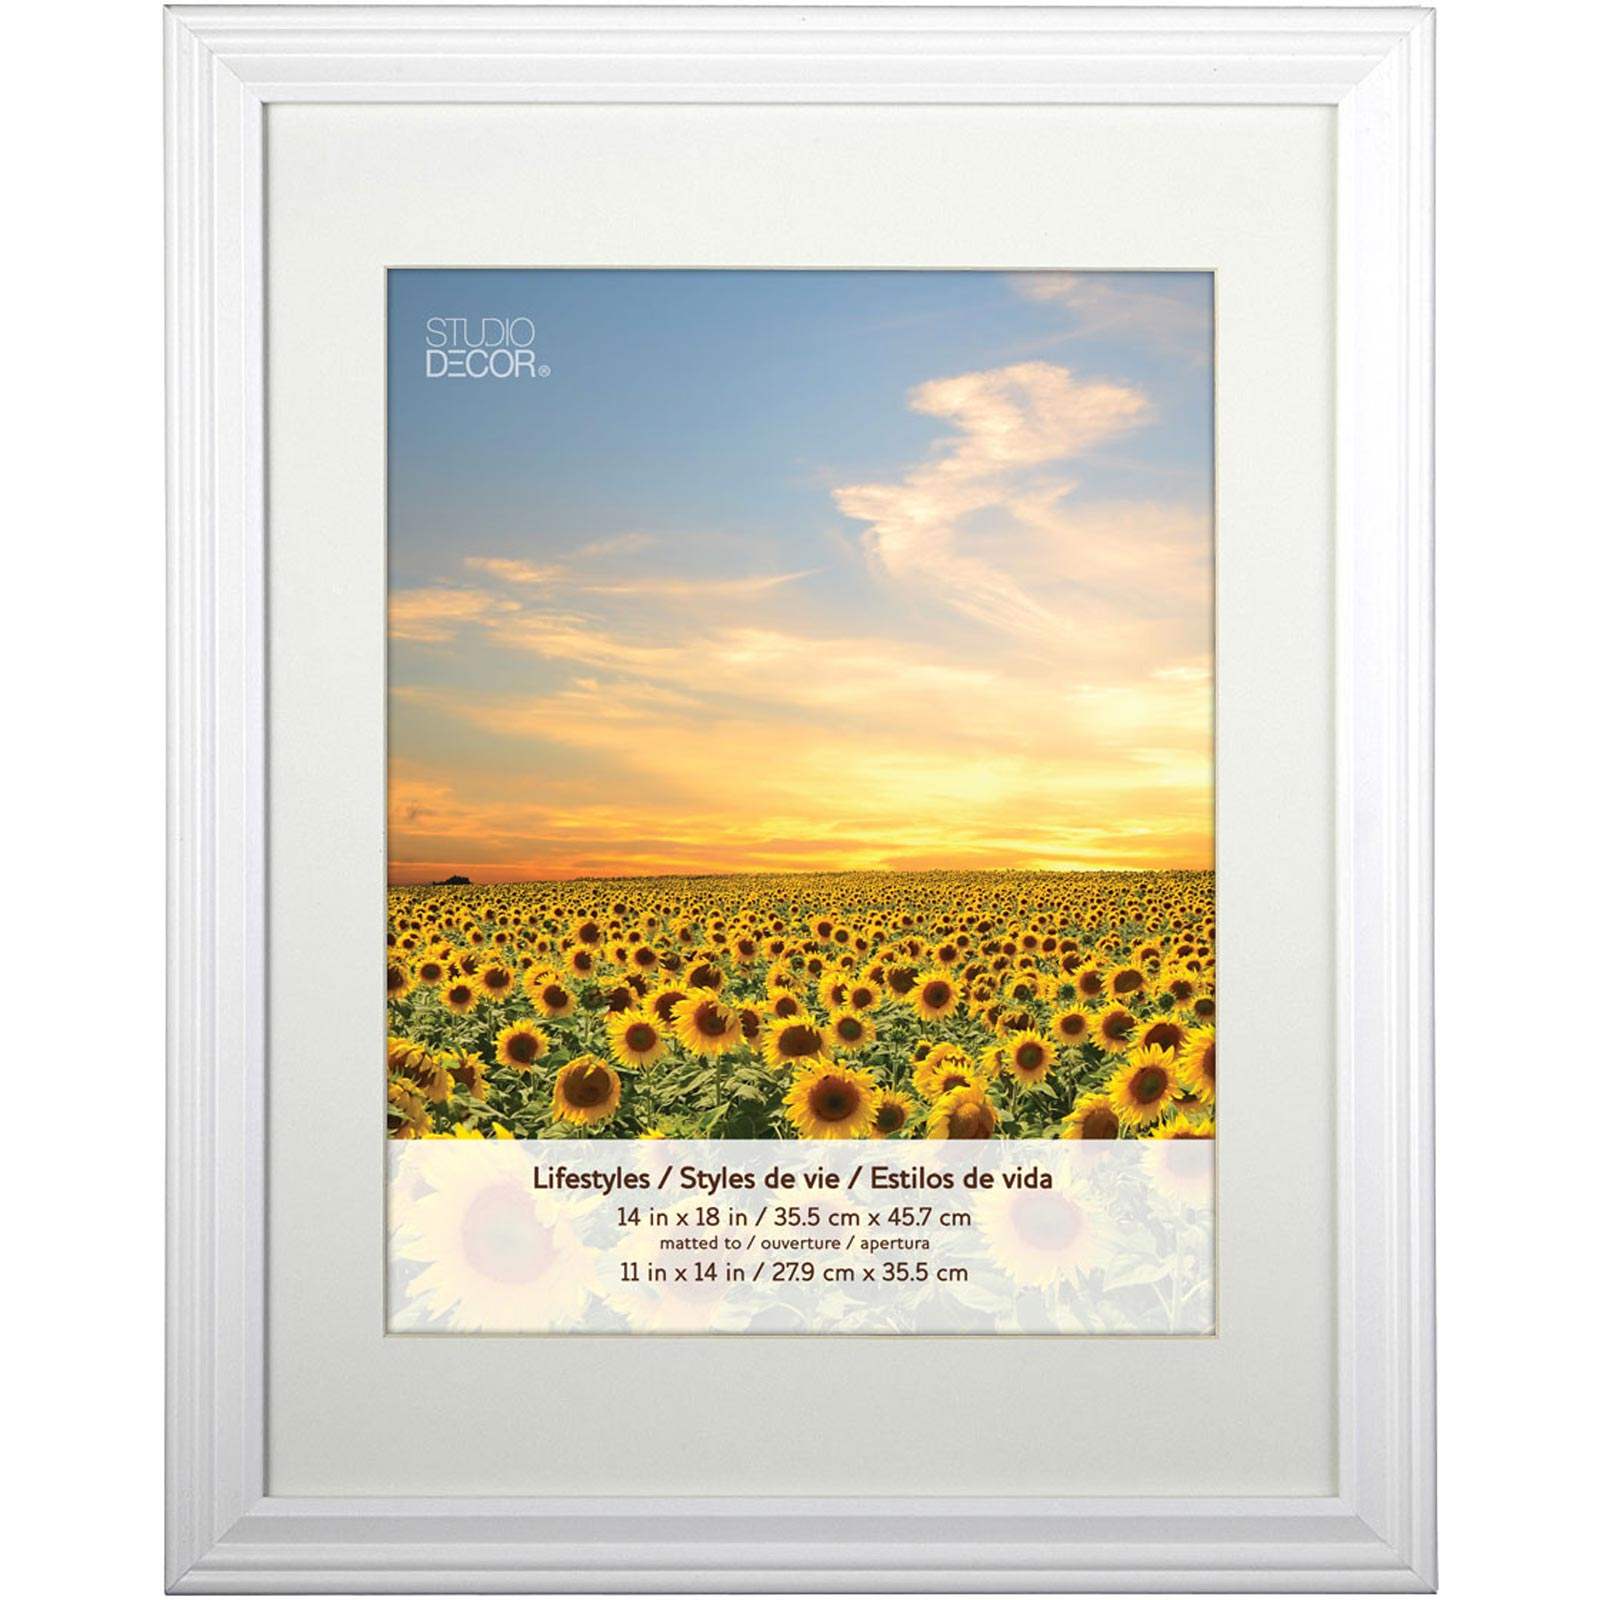 white frame with mat lifestyles by studio dcor